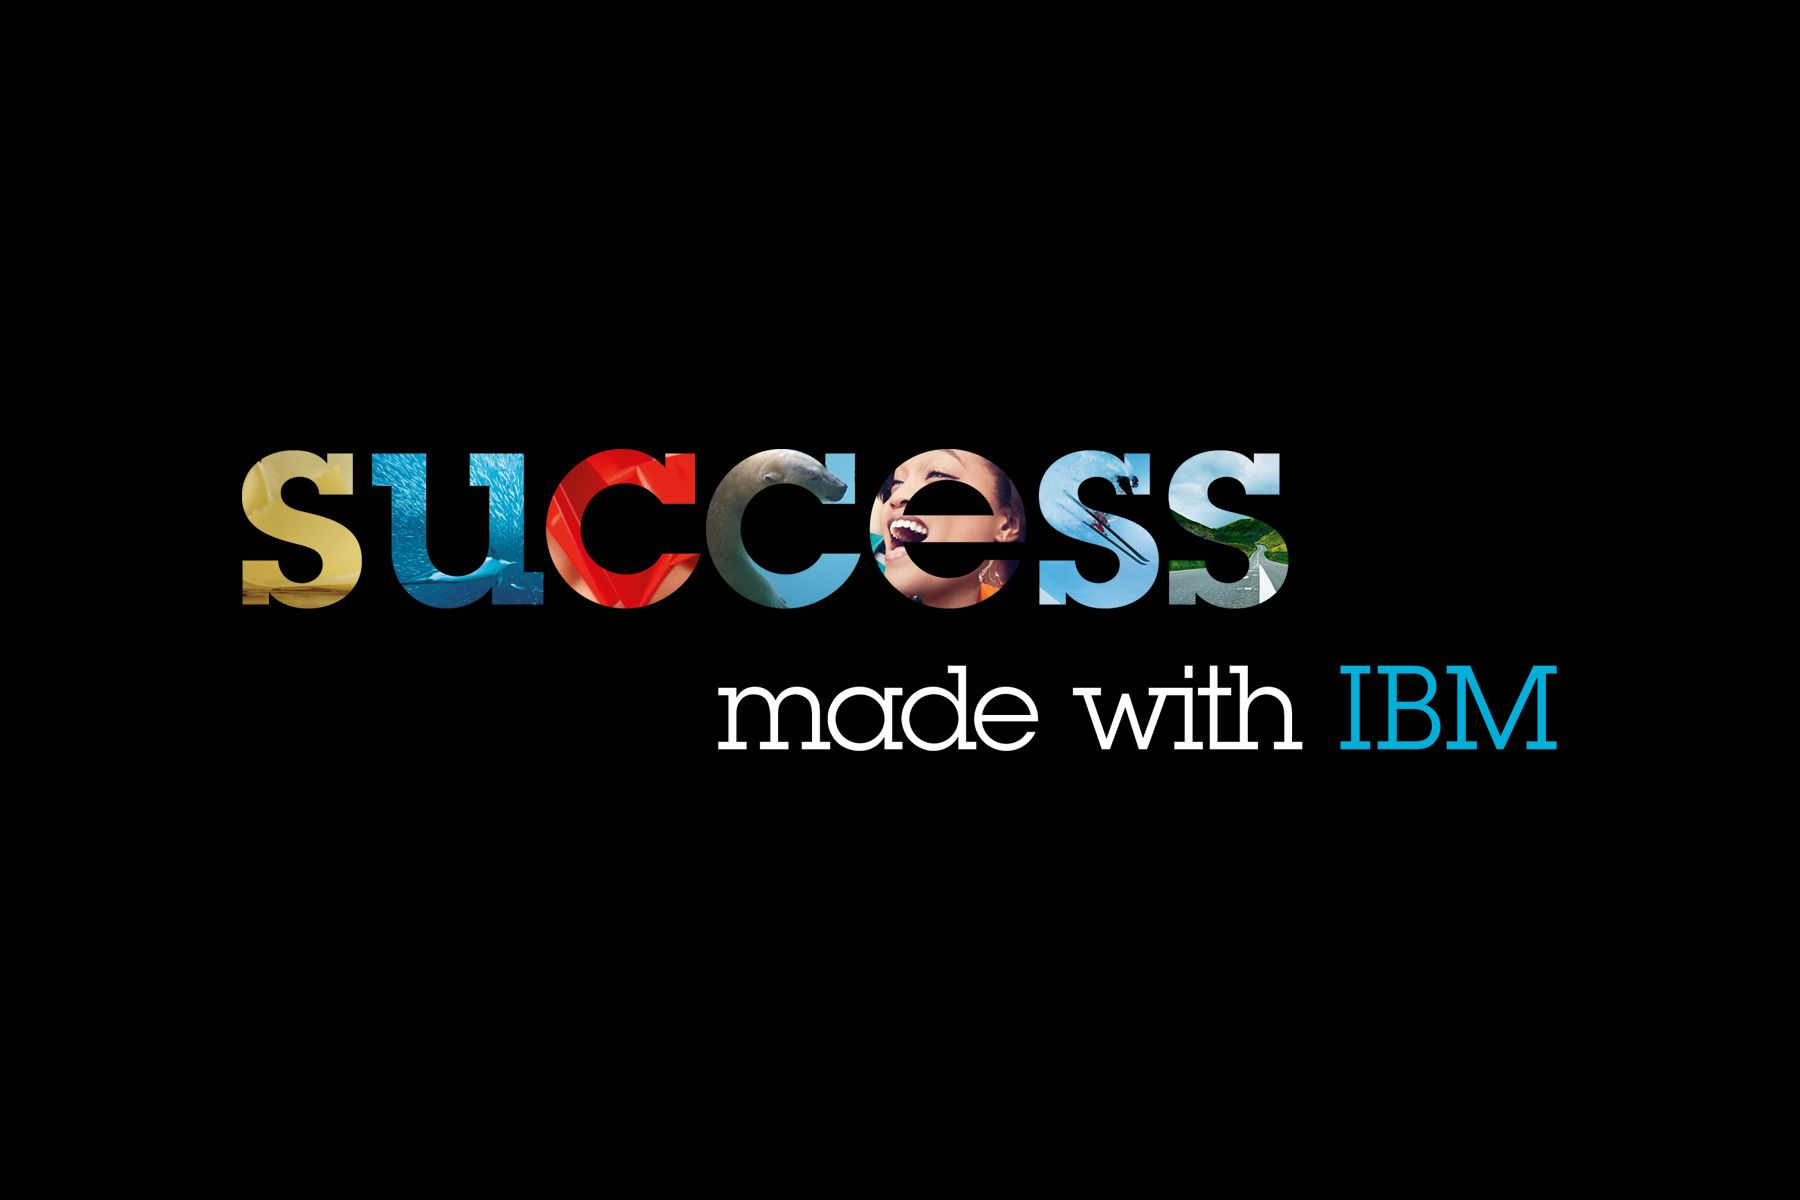 Discover the latest IT trends and get your business ready for the digital age and for your 'success, made with IBM' -  at the CeBIT, from March 16 - 20, 2015